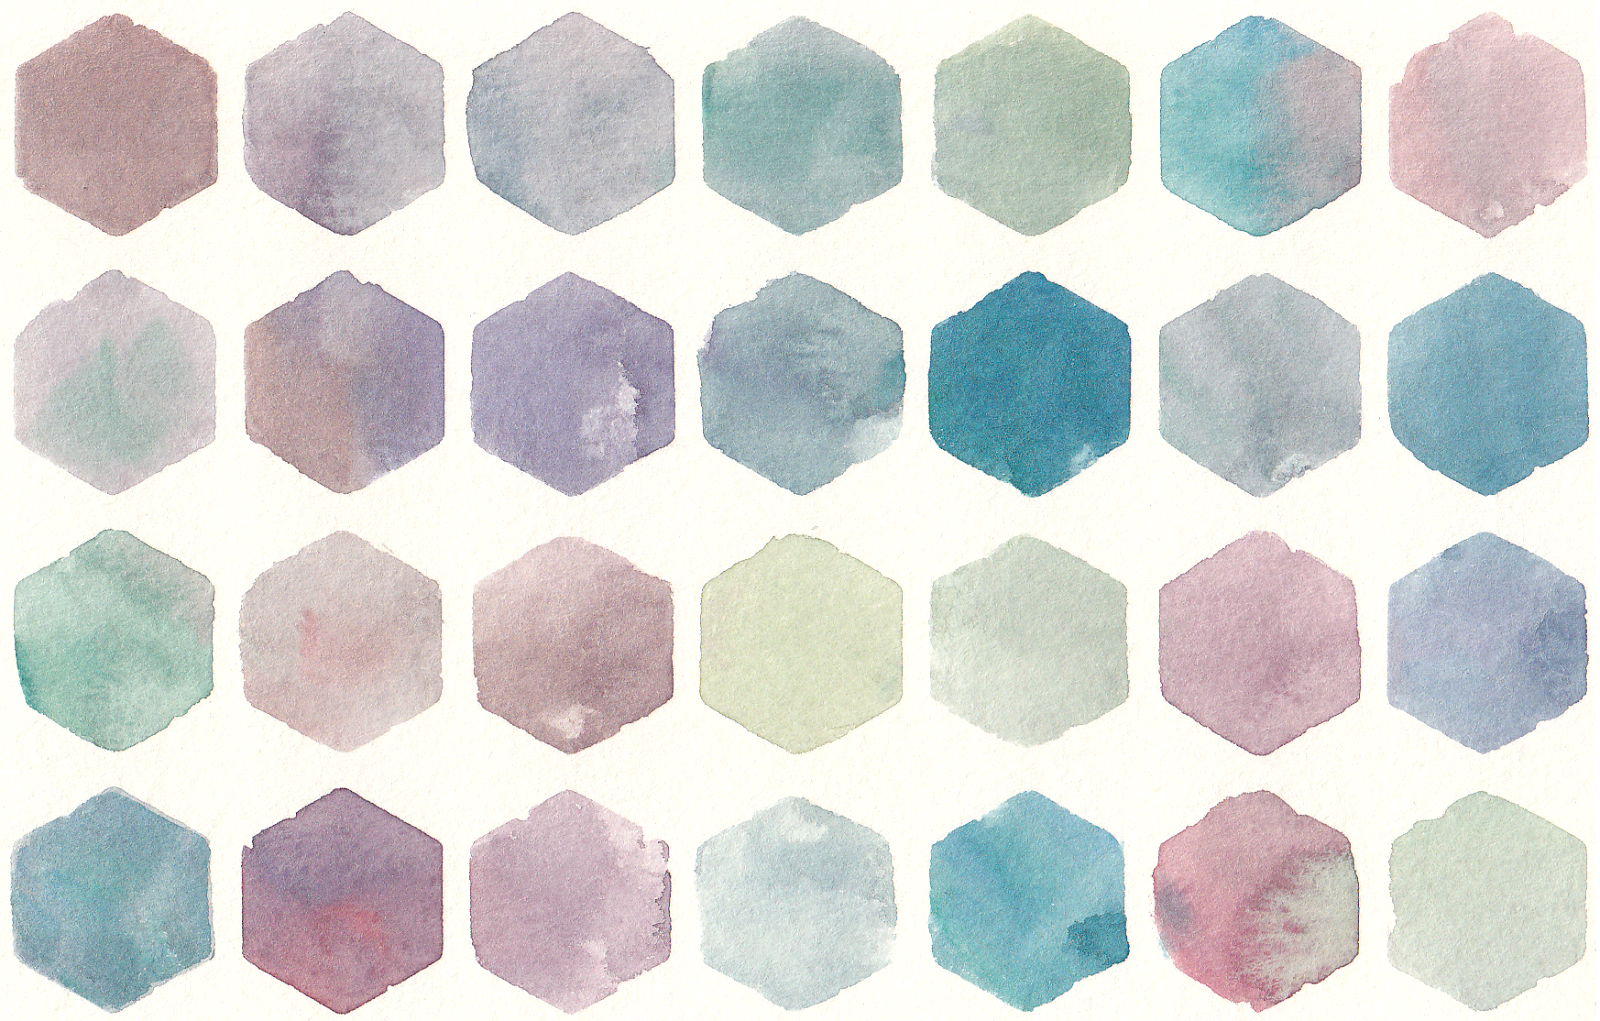 Free watercolor hexagon pattern clip art watercolour for Watercolor painting templates free